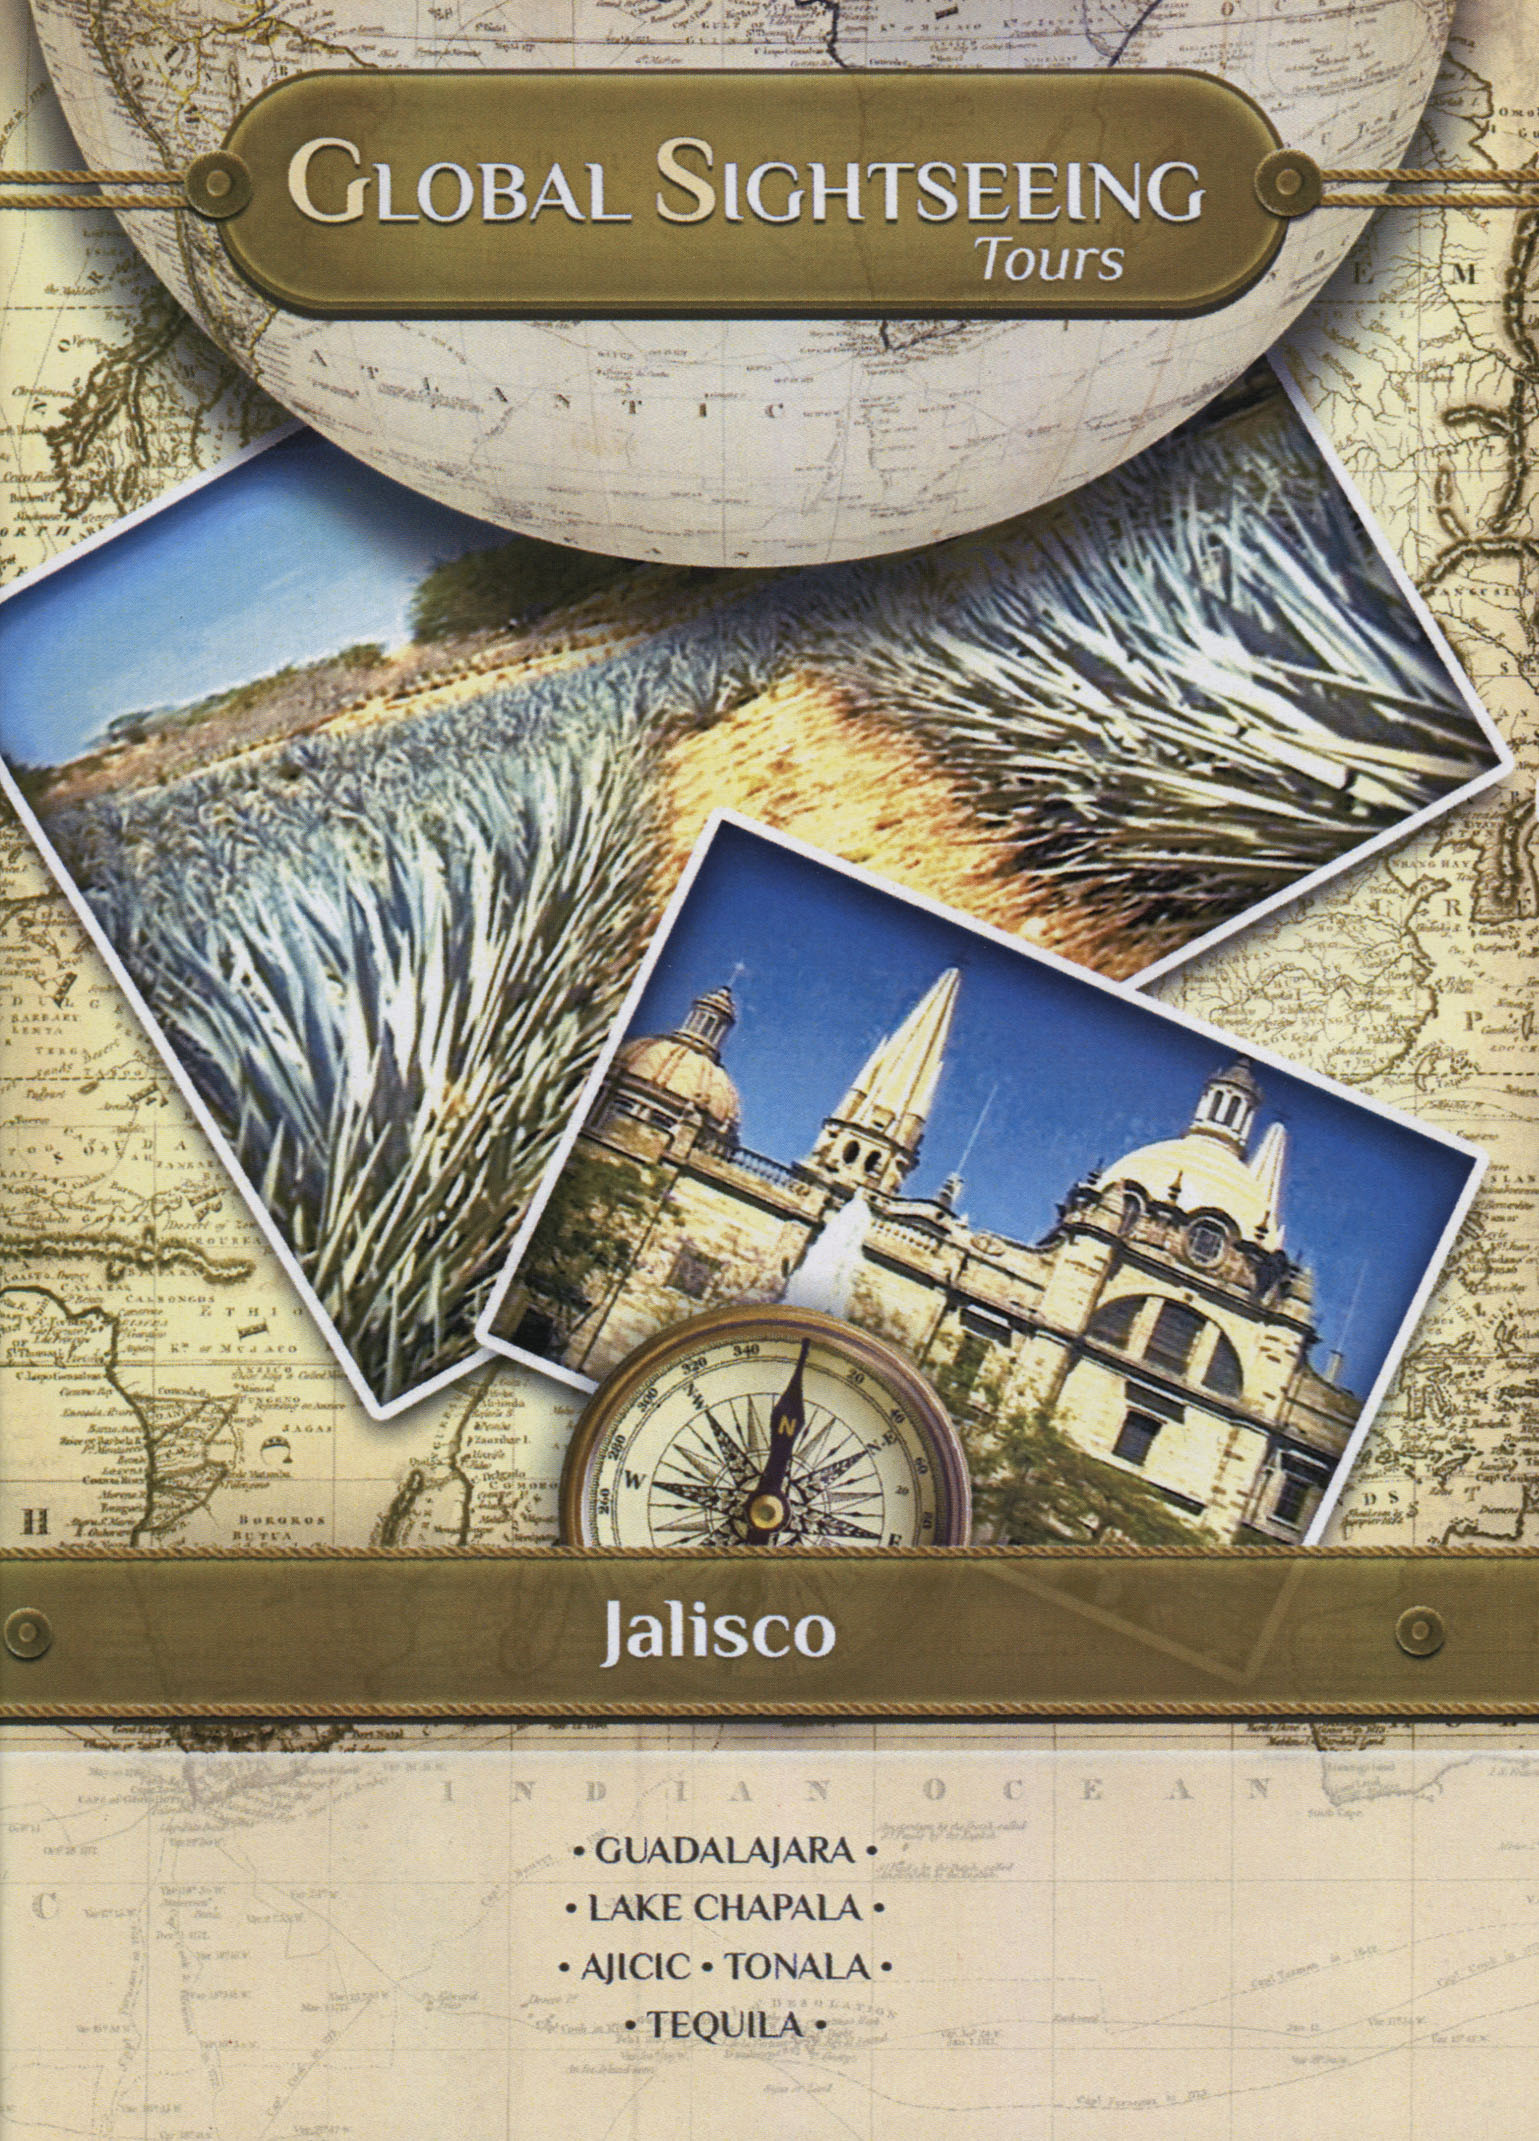 Global Sightseeing Tours: Jalisco